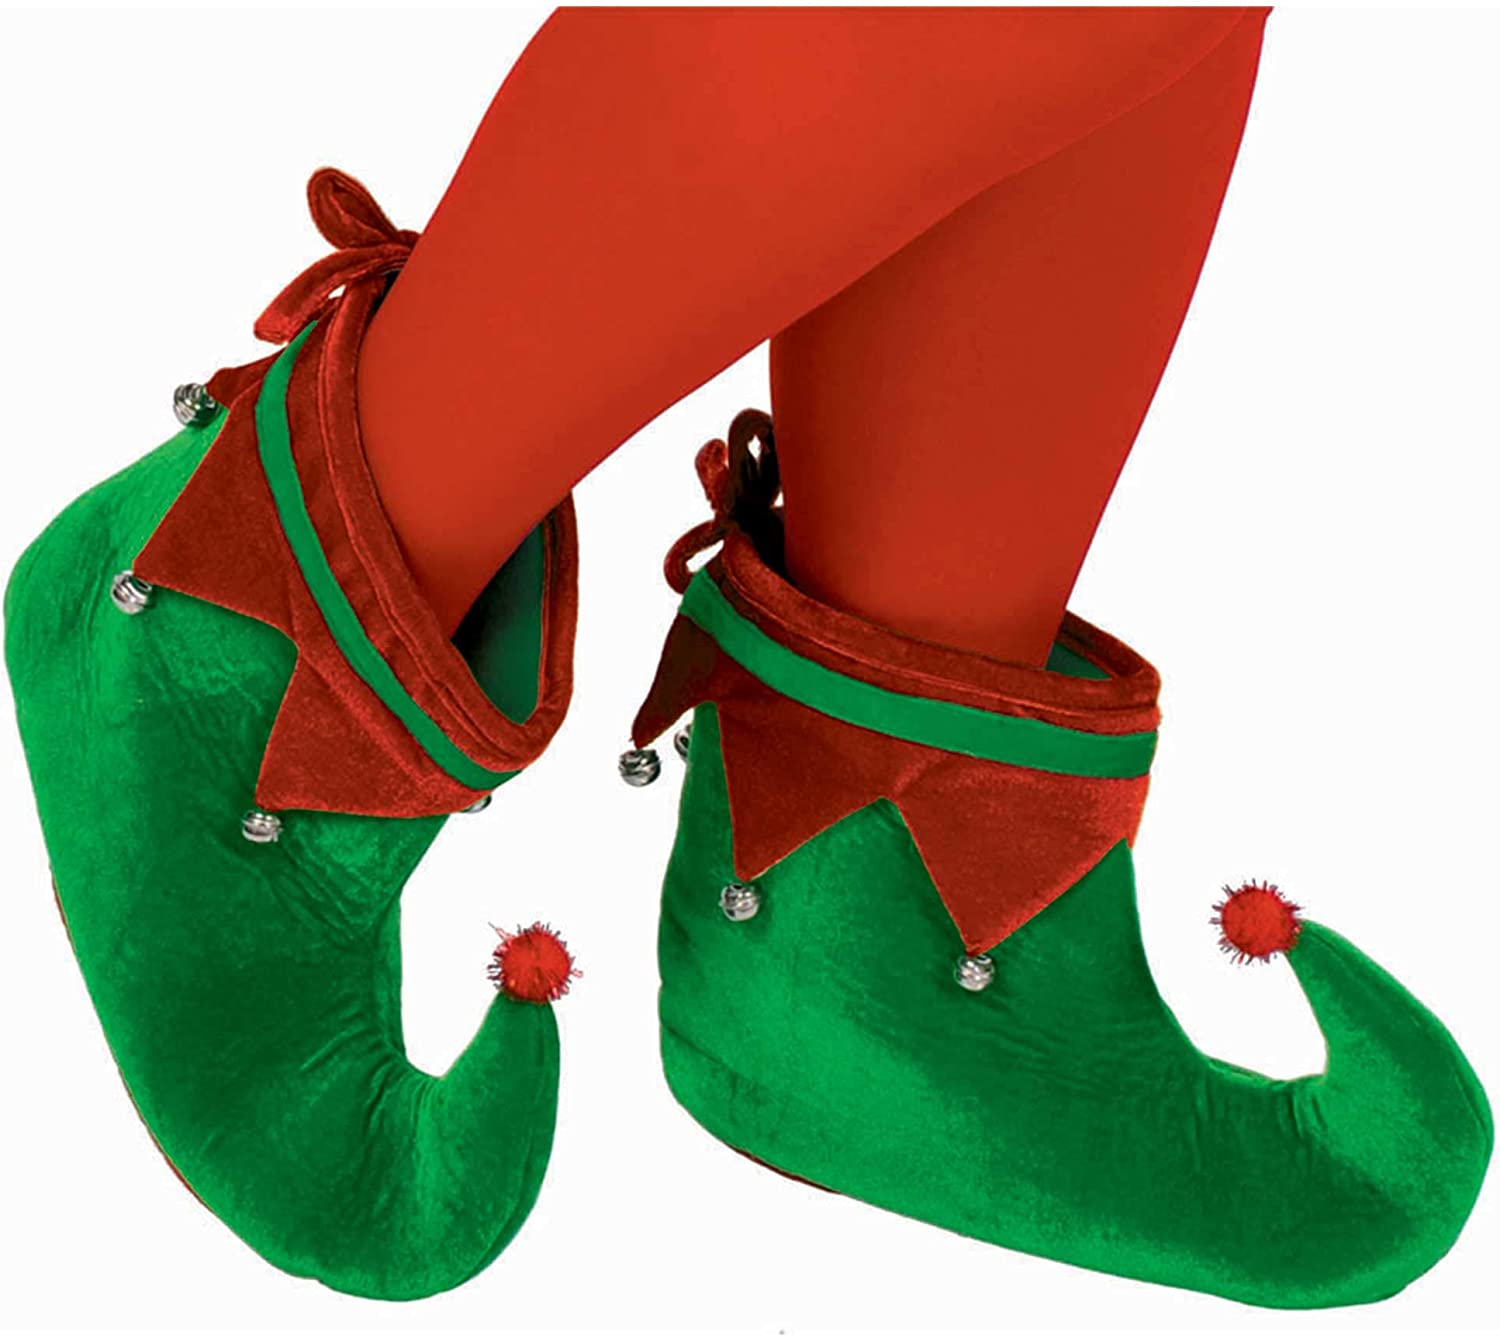 amscan 393235 Adult Elf Max 54% OFF Shoes Costume Party 2021 spring and summer new Fabric